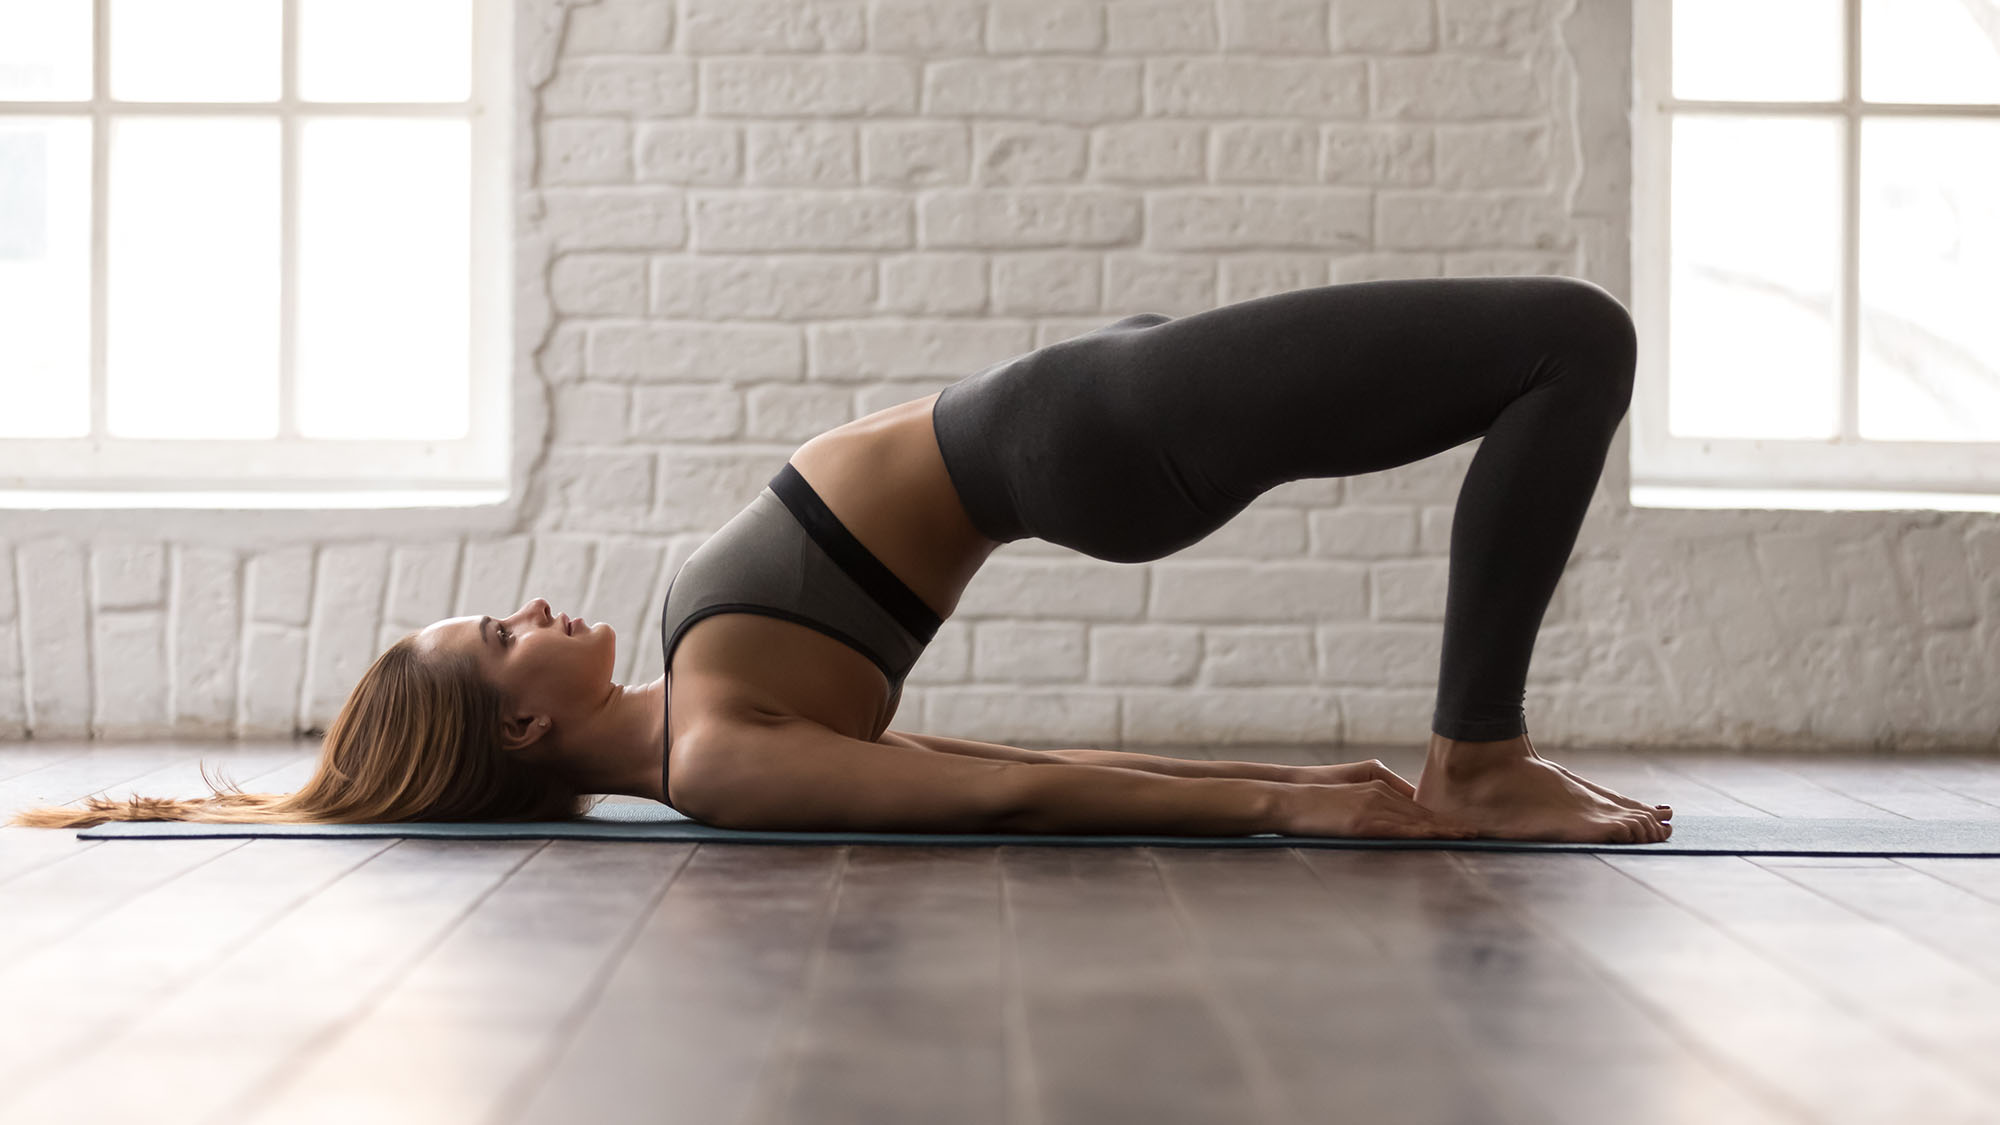 10 At-Home Exercises For Women That Actually Work